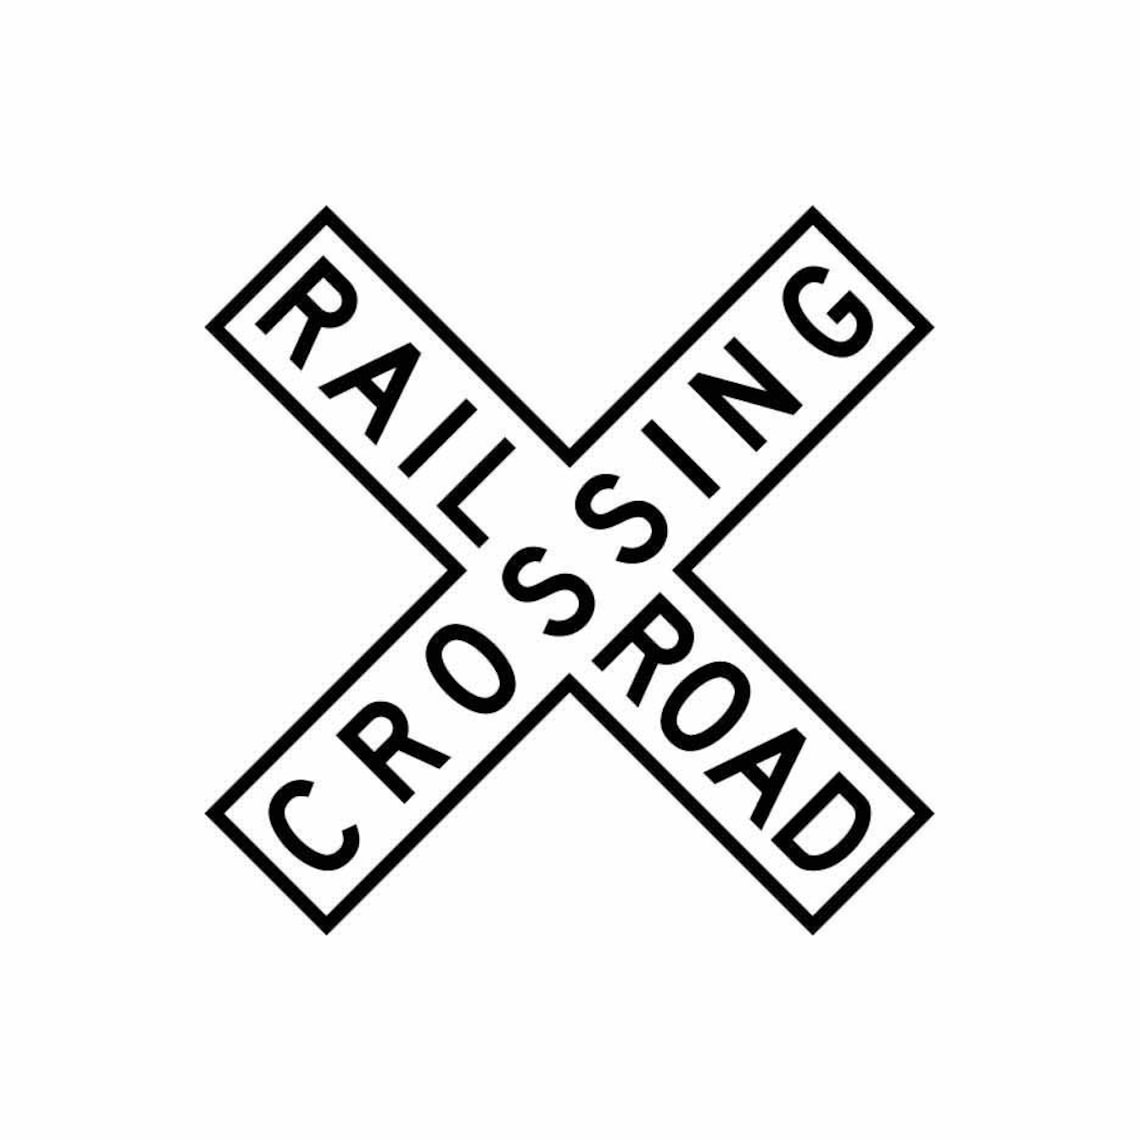 Railroad Crossing Sign train signal 1 vector .eps .svg .dxf image 0